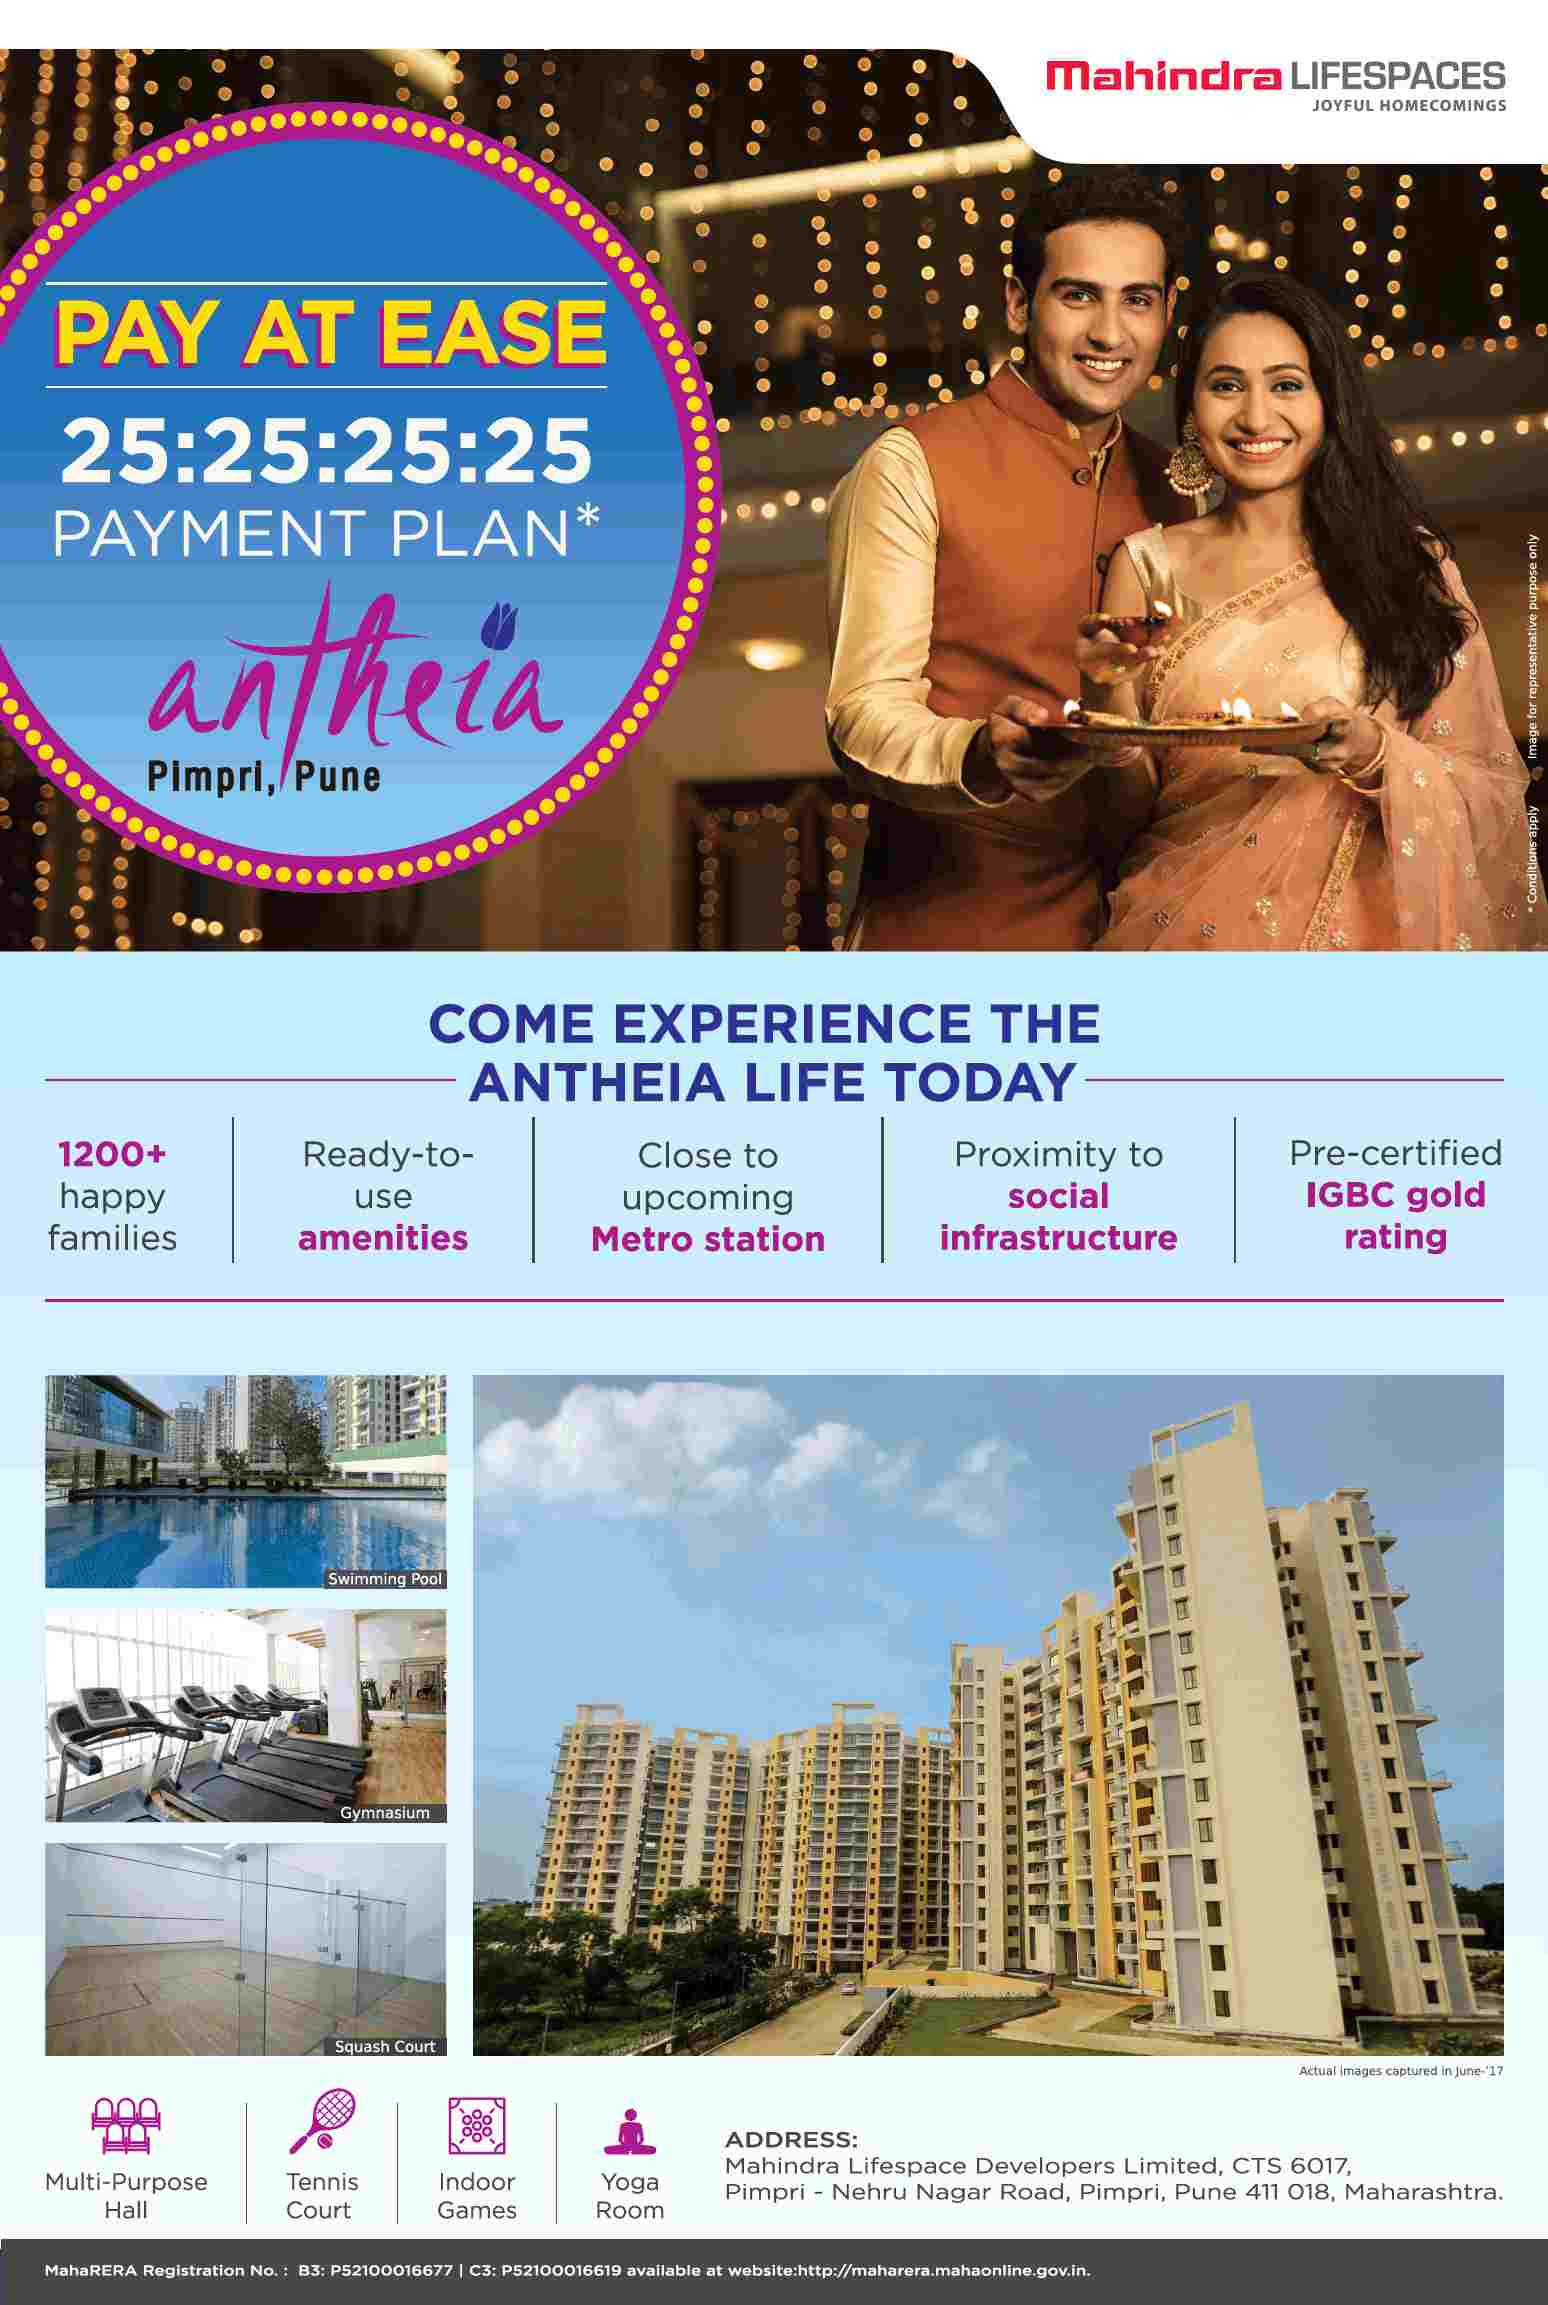 Avail the 25 25 25 25 payment plan at Mahindra Antheia in Pimpri Pune